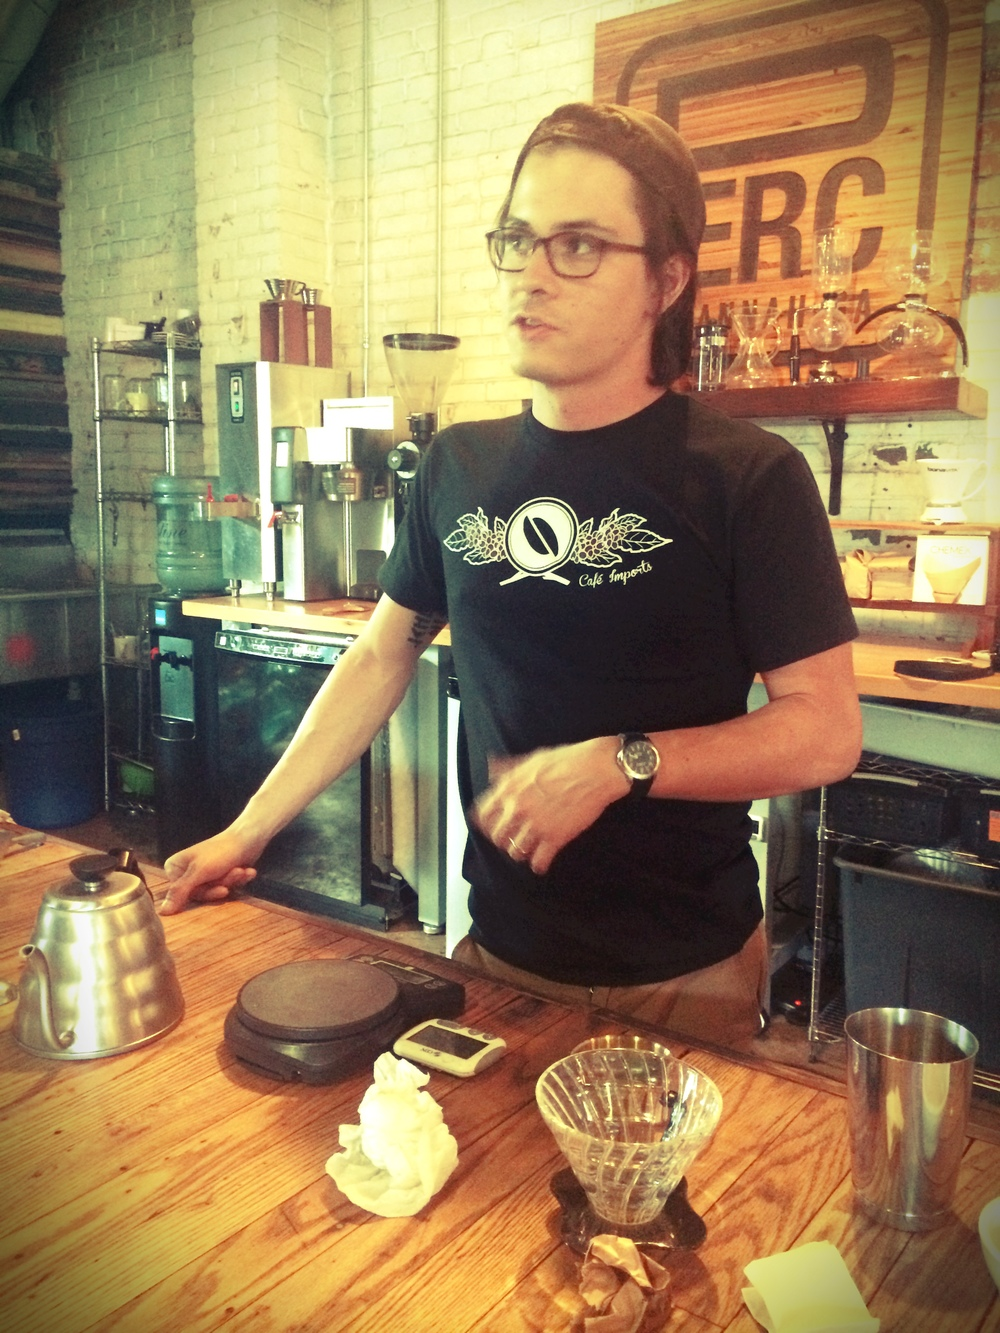 3.  This is Spencer, that quality dude I mentioned.  Super cool guy, and makes a schmokin mean cup a' joe.